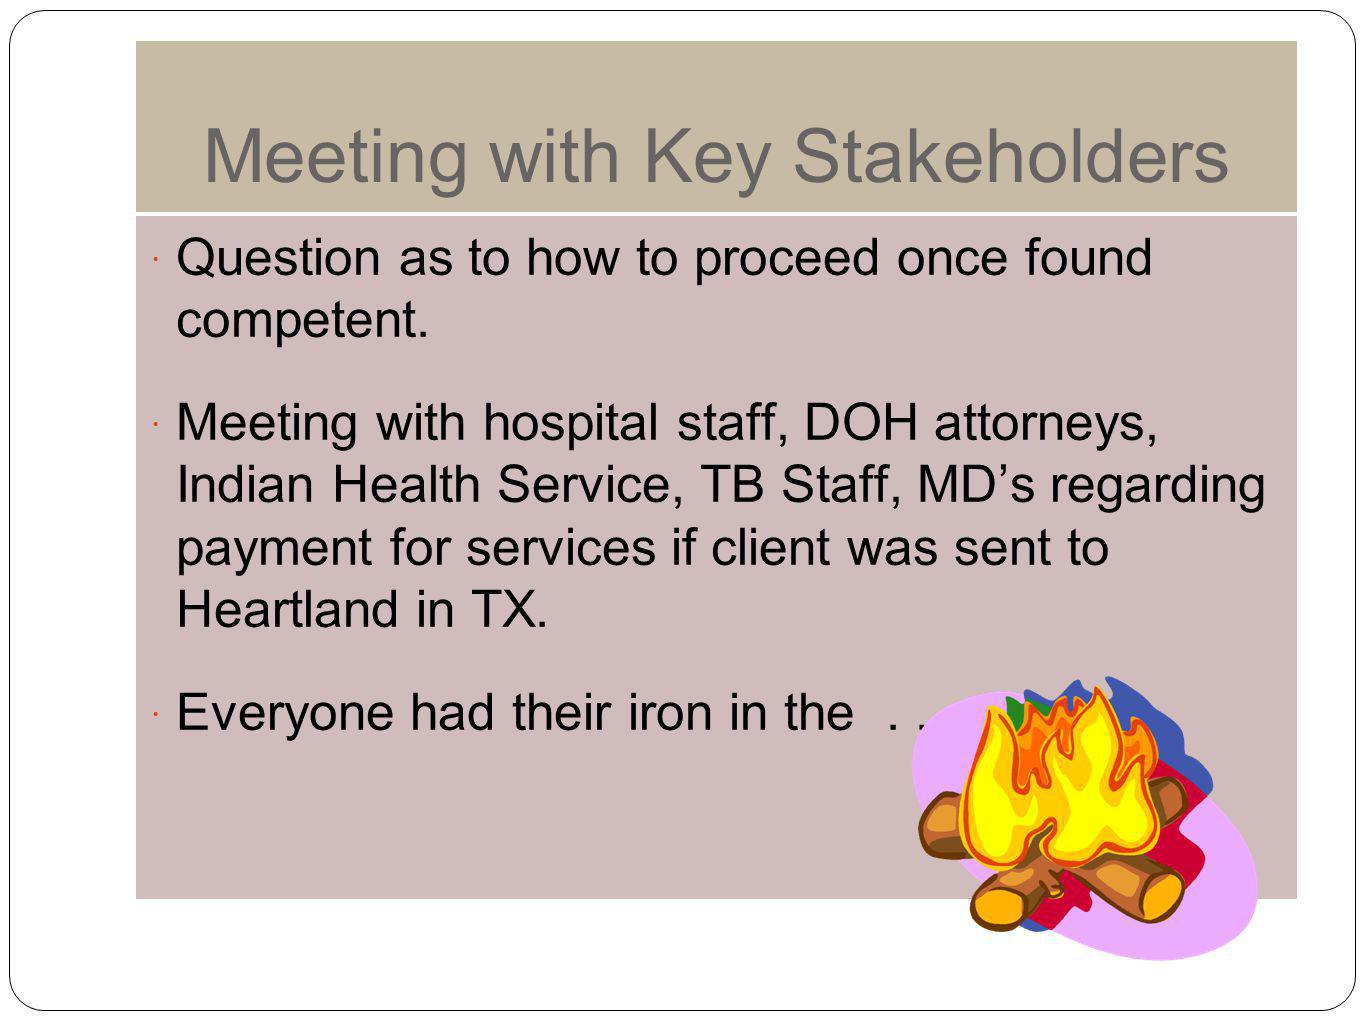 Meeting with Key Stakeholders